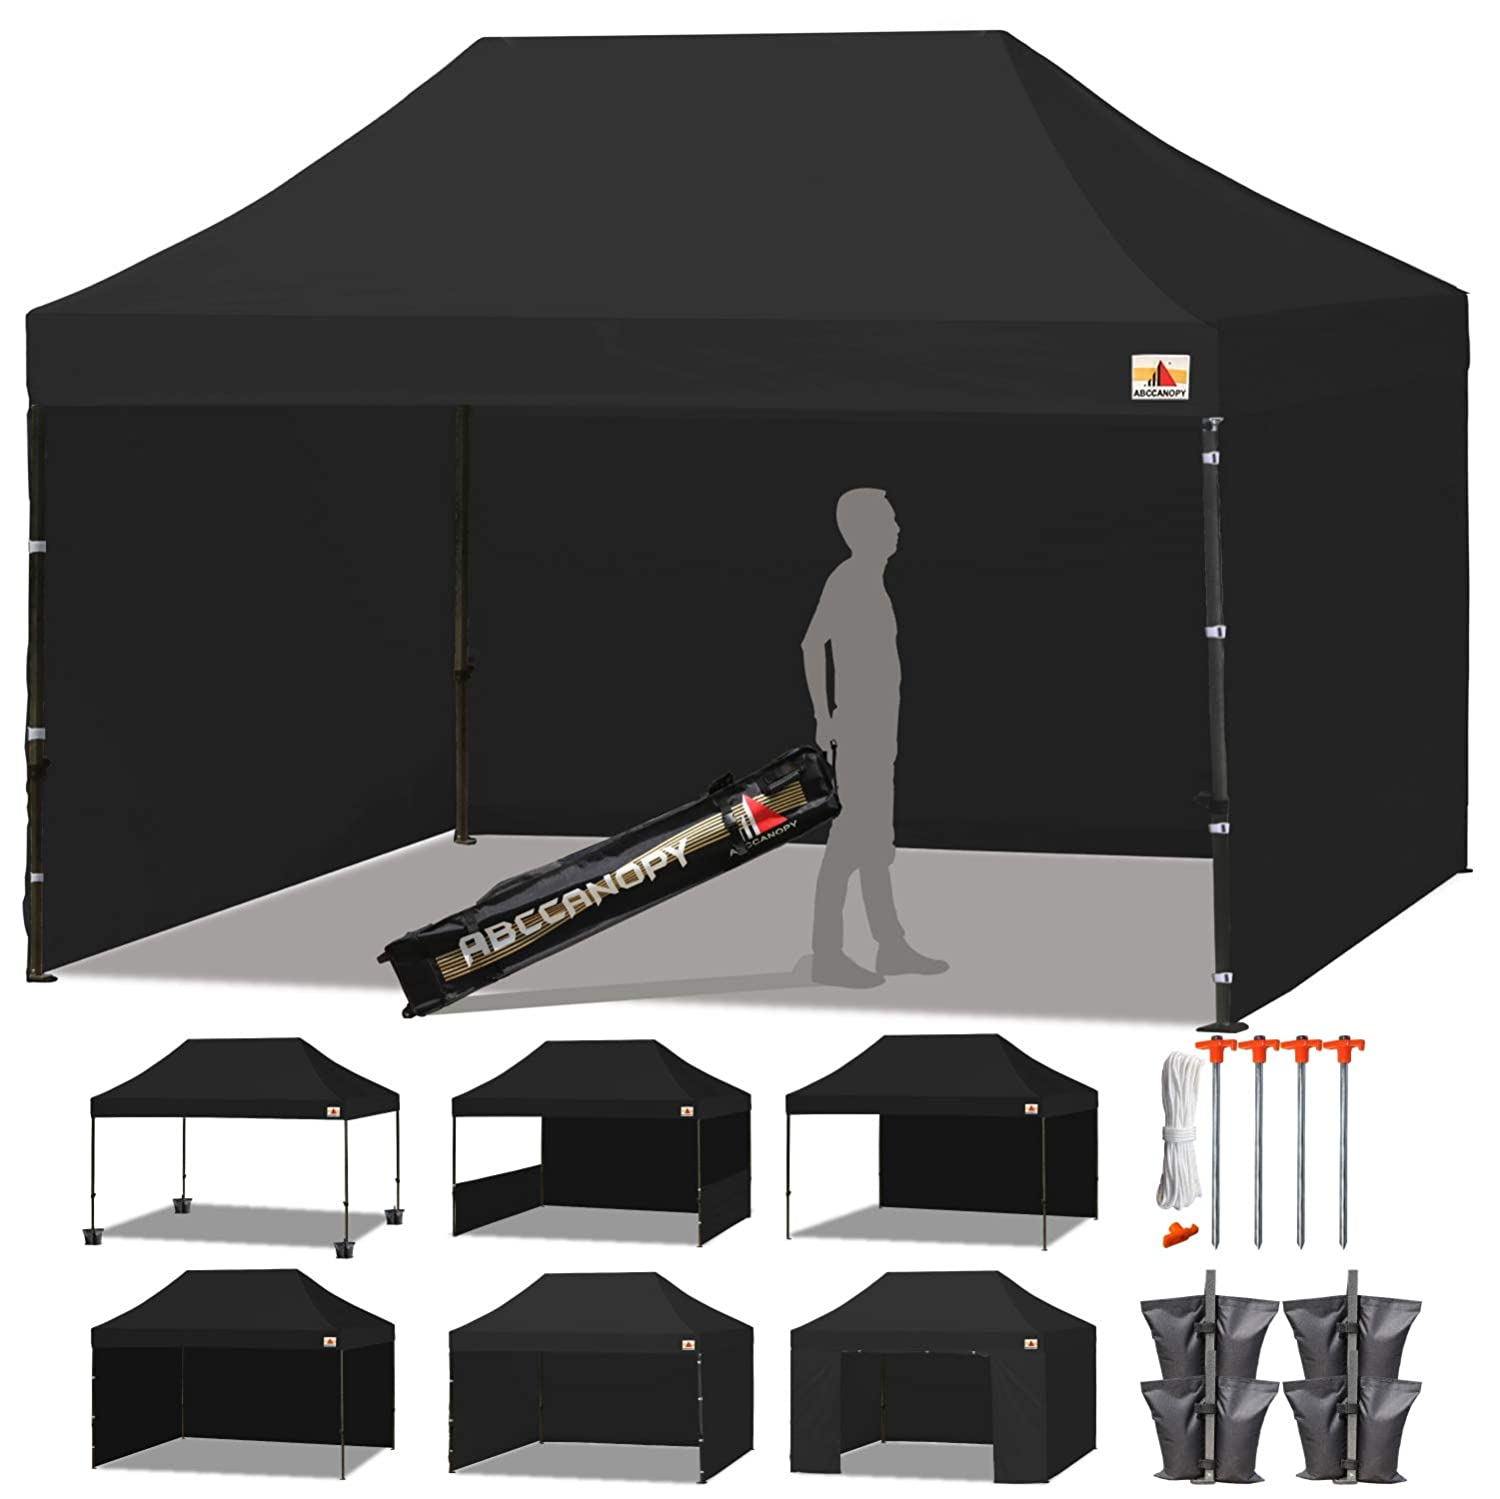 ABCCANOPY Deluxe 10 X 15 Pop up Canopy Tent Commercial Instant Gazebos with 6 Removable Walls and Roller Bag and 4 Weight Bags Black